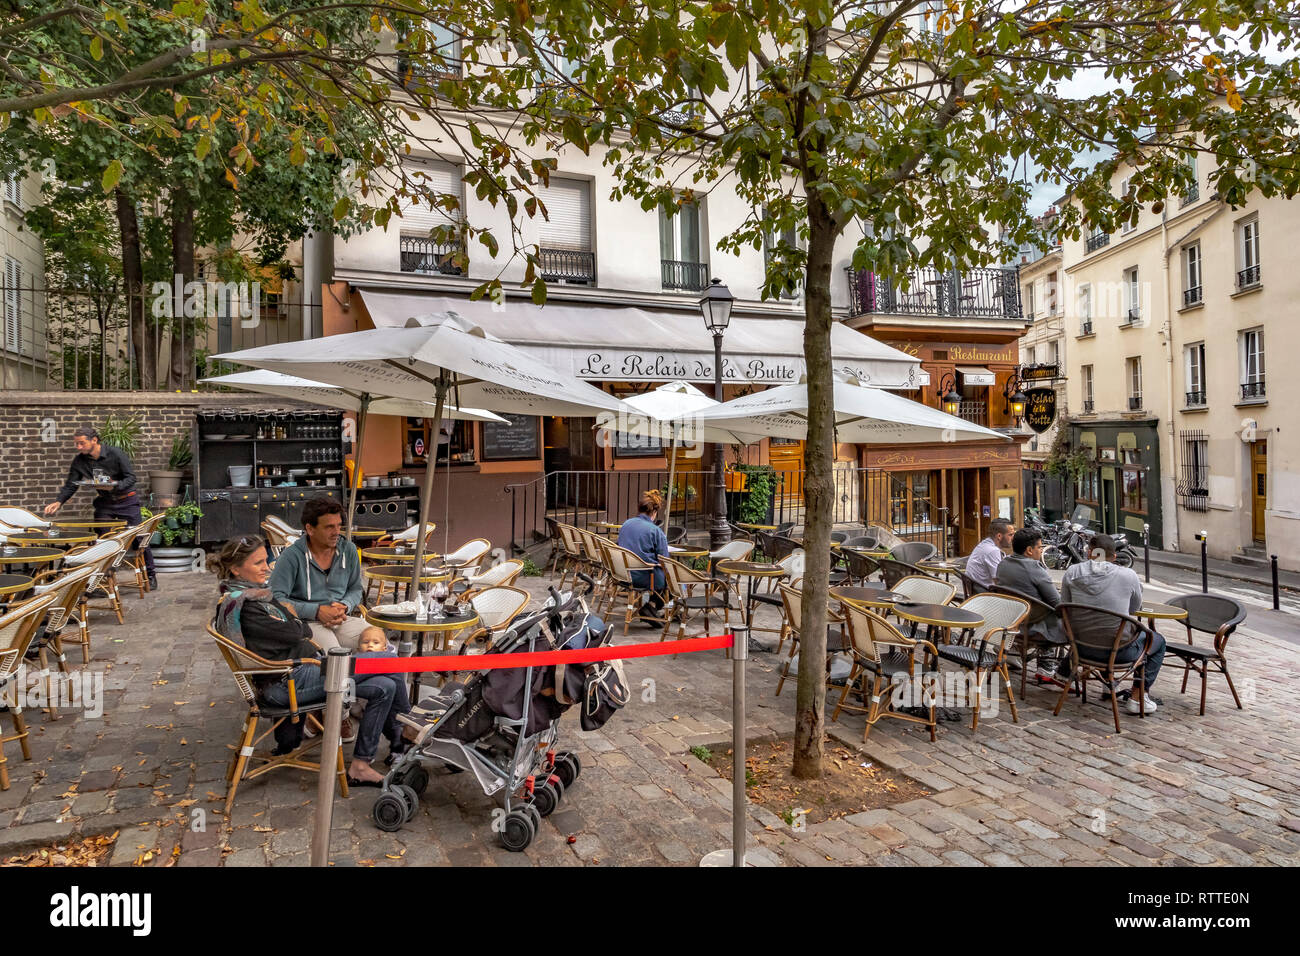 https www alamy com a couple with a baby relaxing at a table outside restaurant le relais de la butte whilst a waiter takes an order a restaurant in montmartre paris image239024373 html